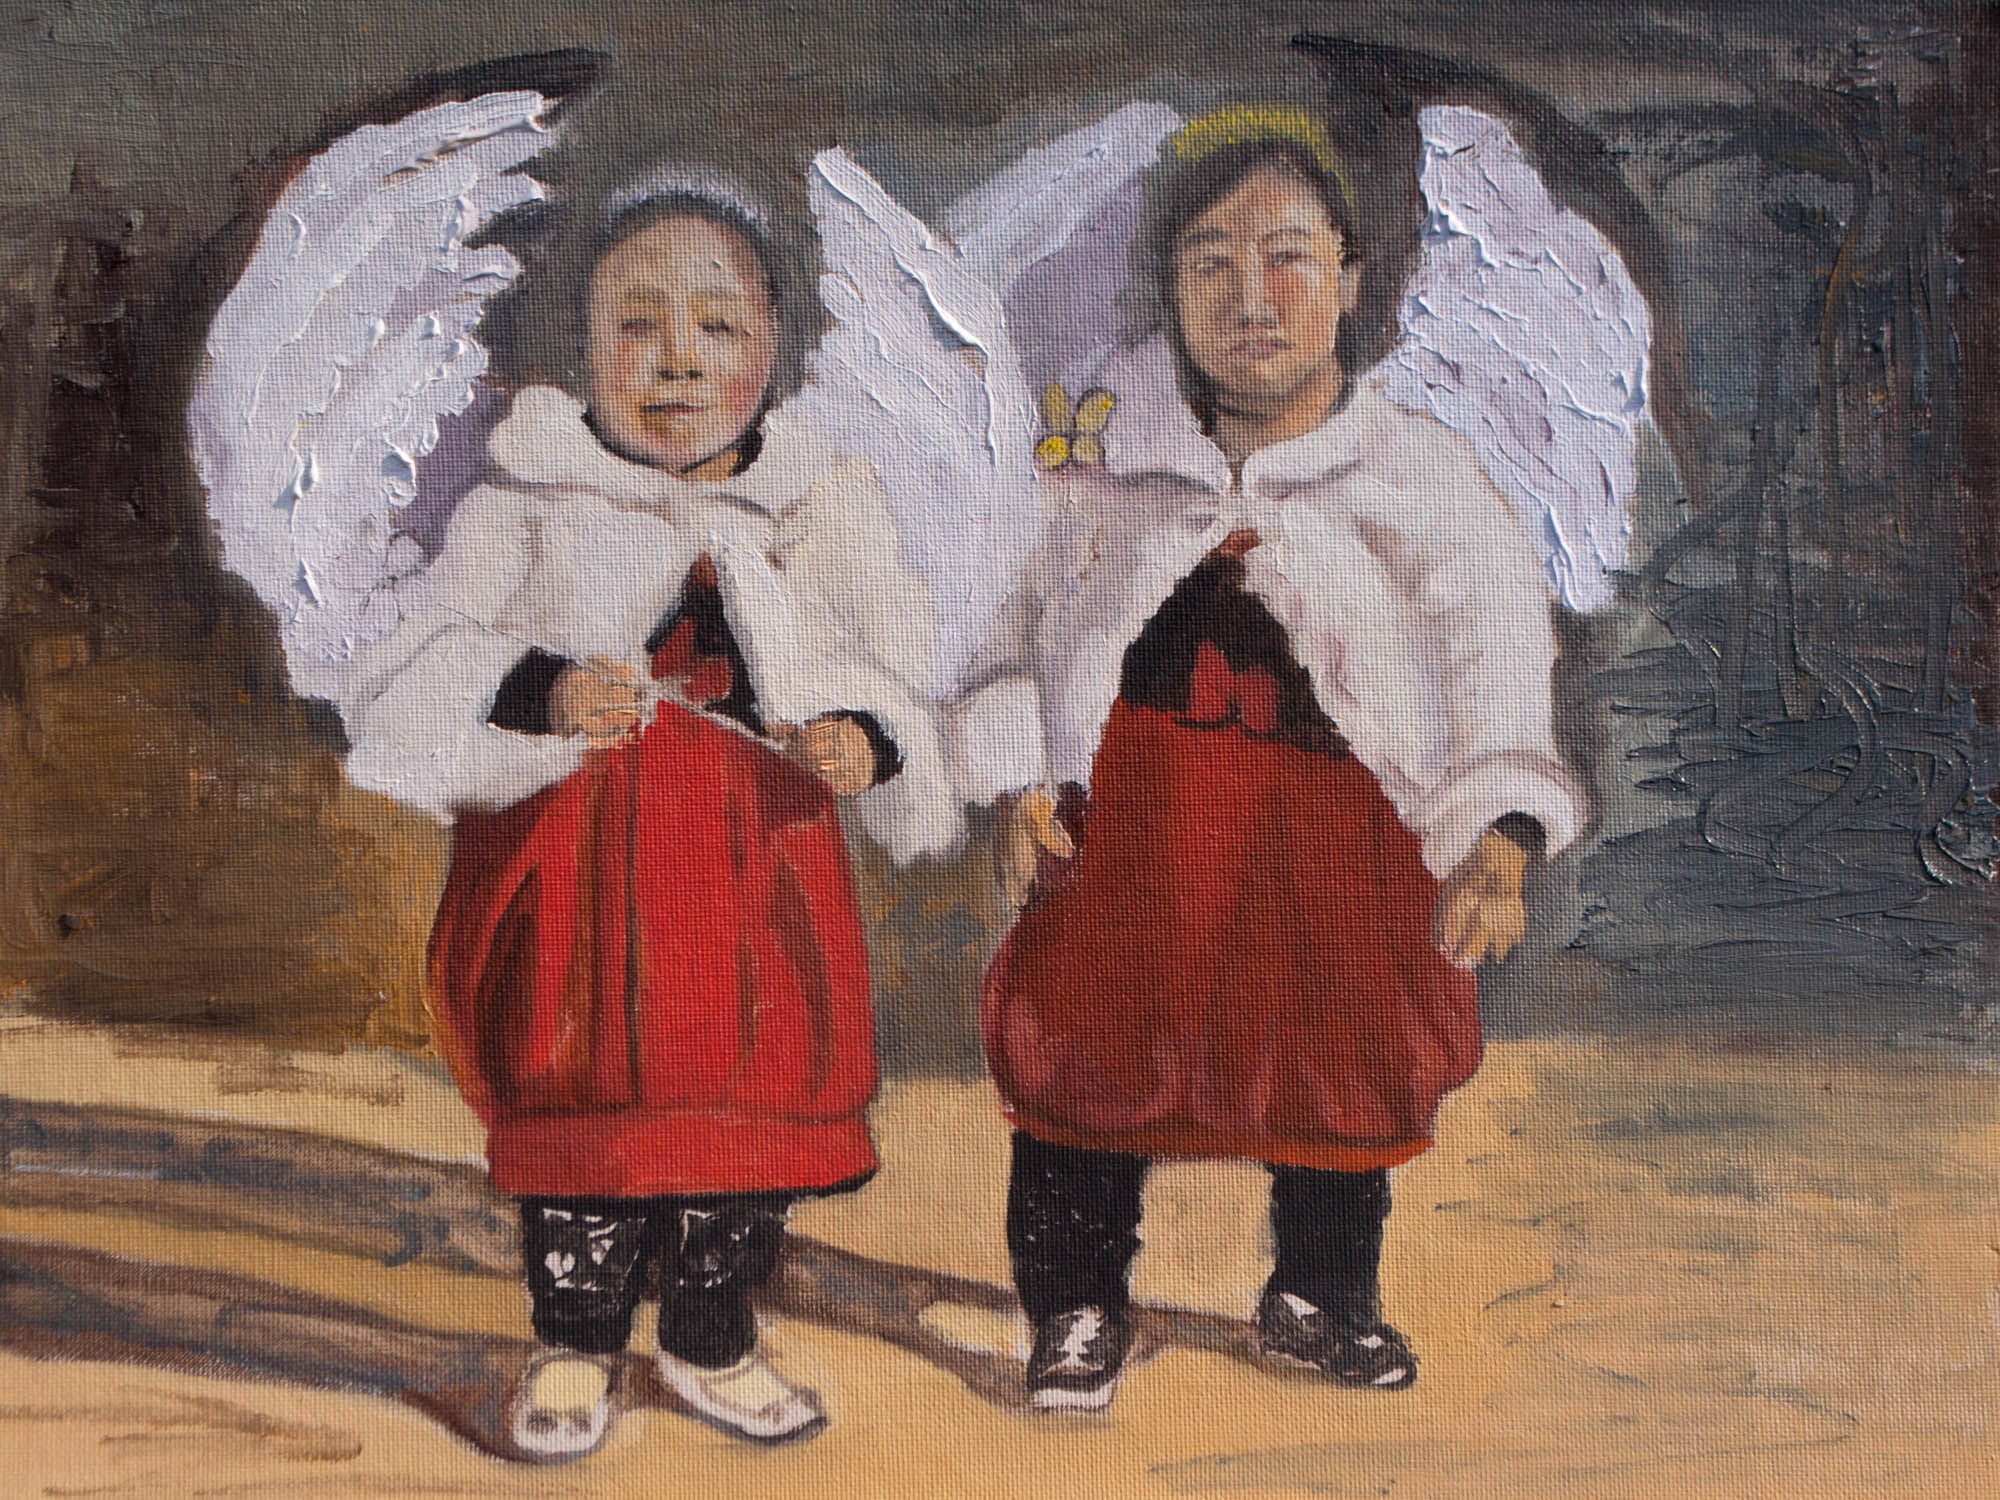 "Angels from the World of Little People /Japan, 12"" x 16"" Oil on Canvas Board, 2013"